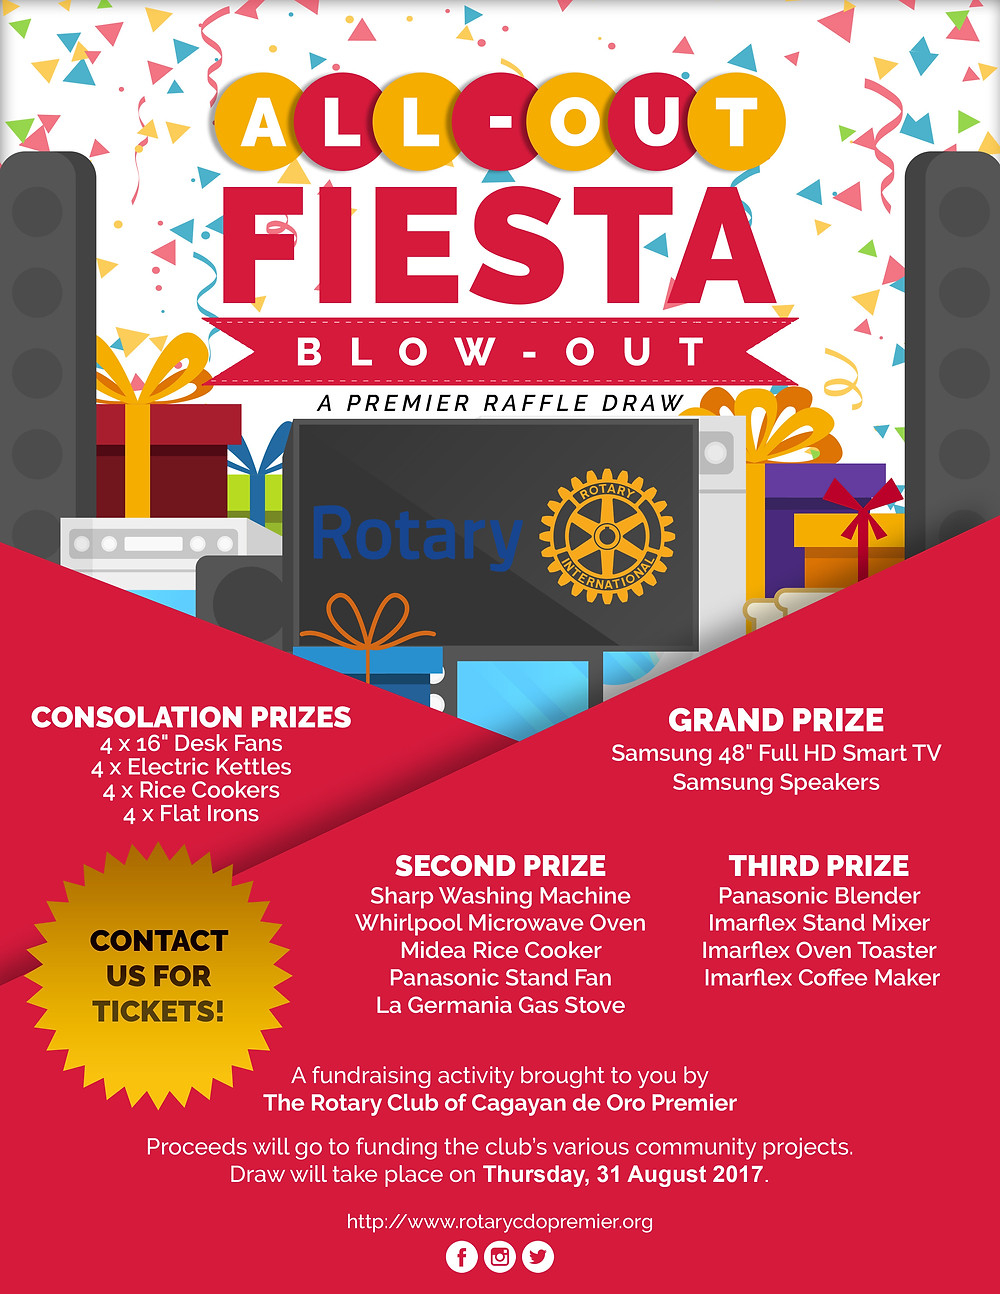 All-out Fiesta Blow-out Raffle Draw Fundraiser